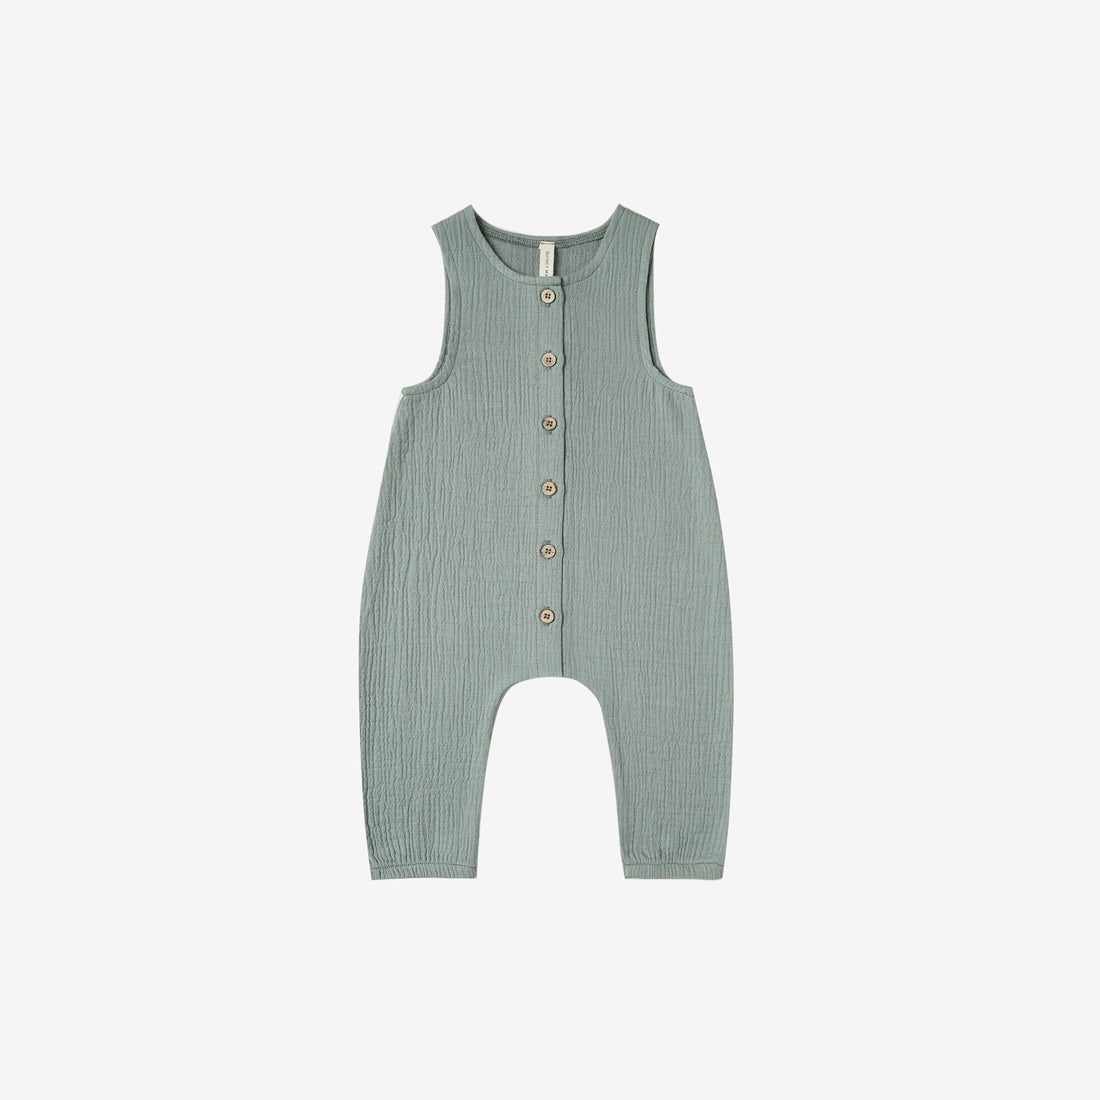 Organic Double Gauze Snap Tank Jumpsuit Overall - Ocean